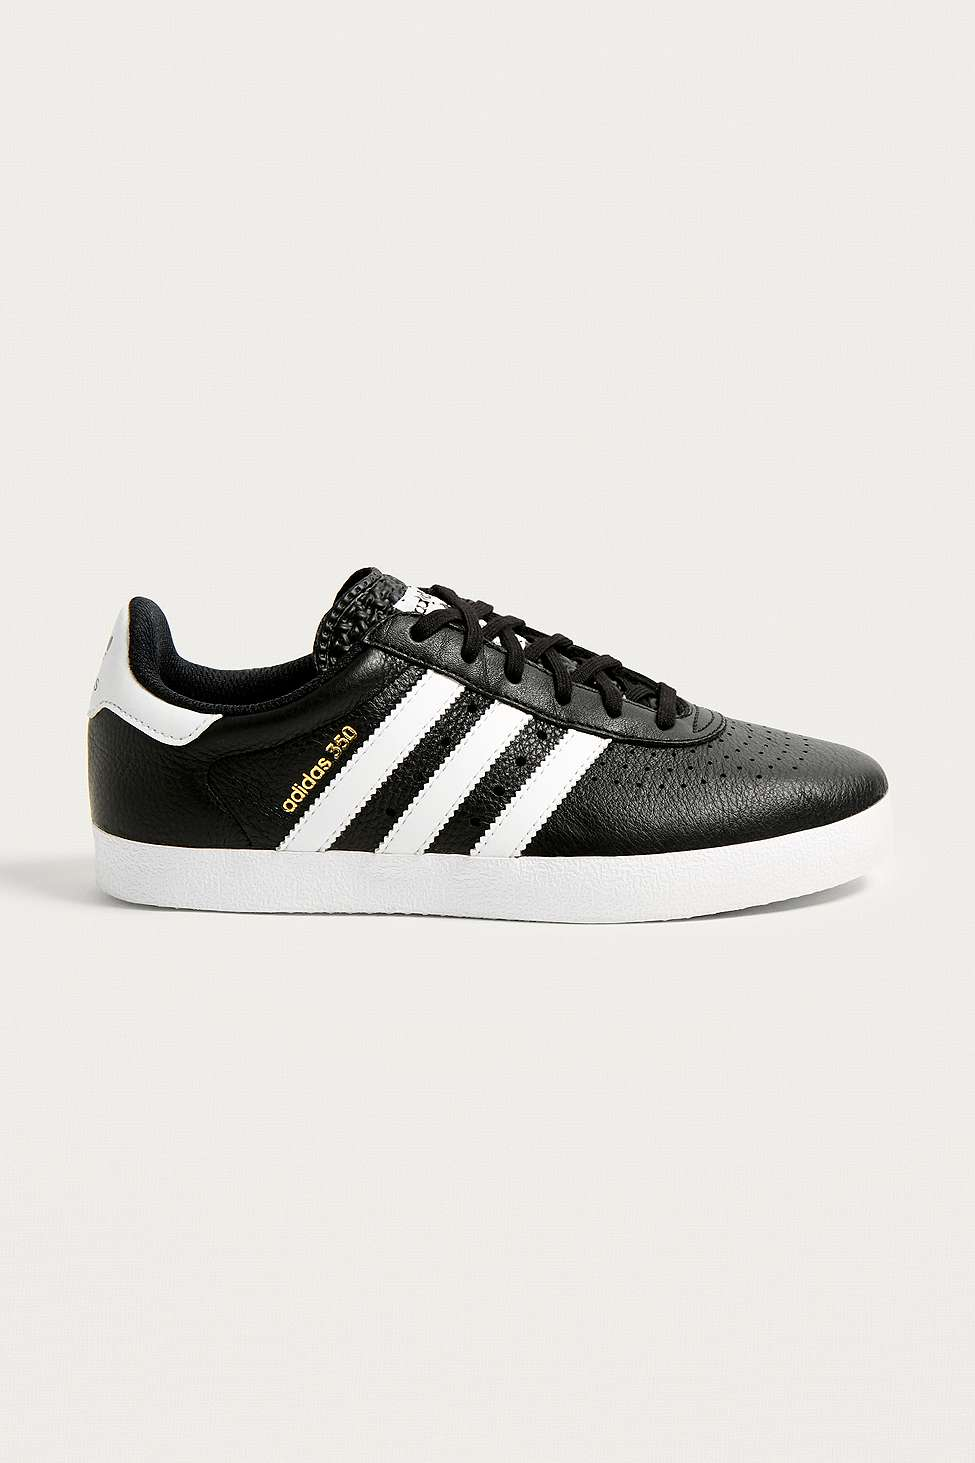 adidas Originals 350 Leather Trainers, Black Multi